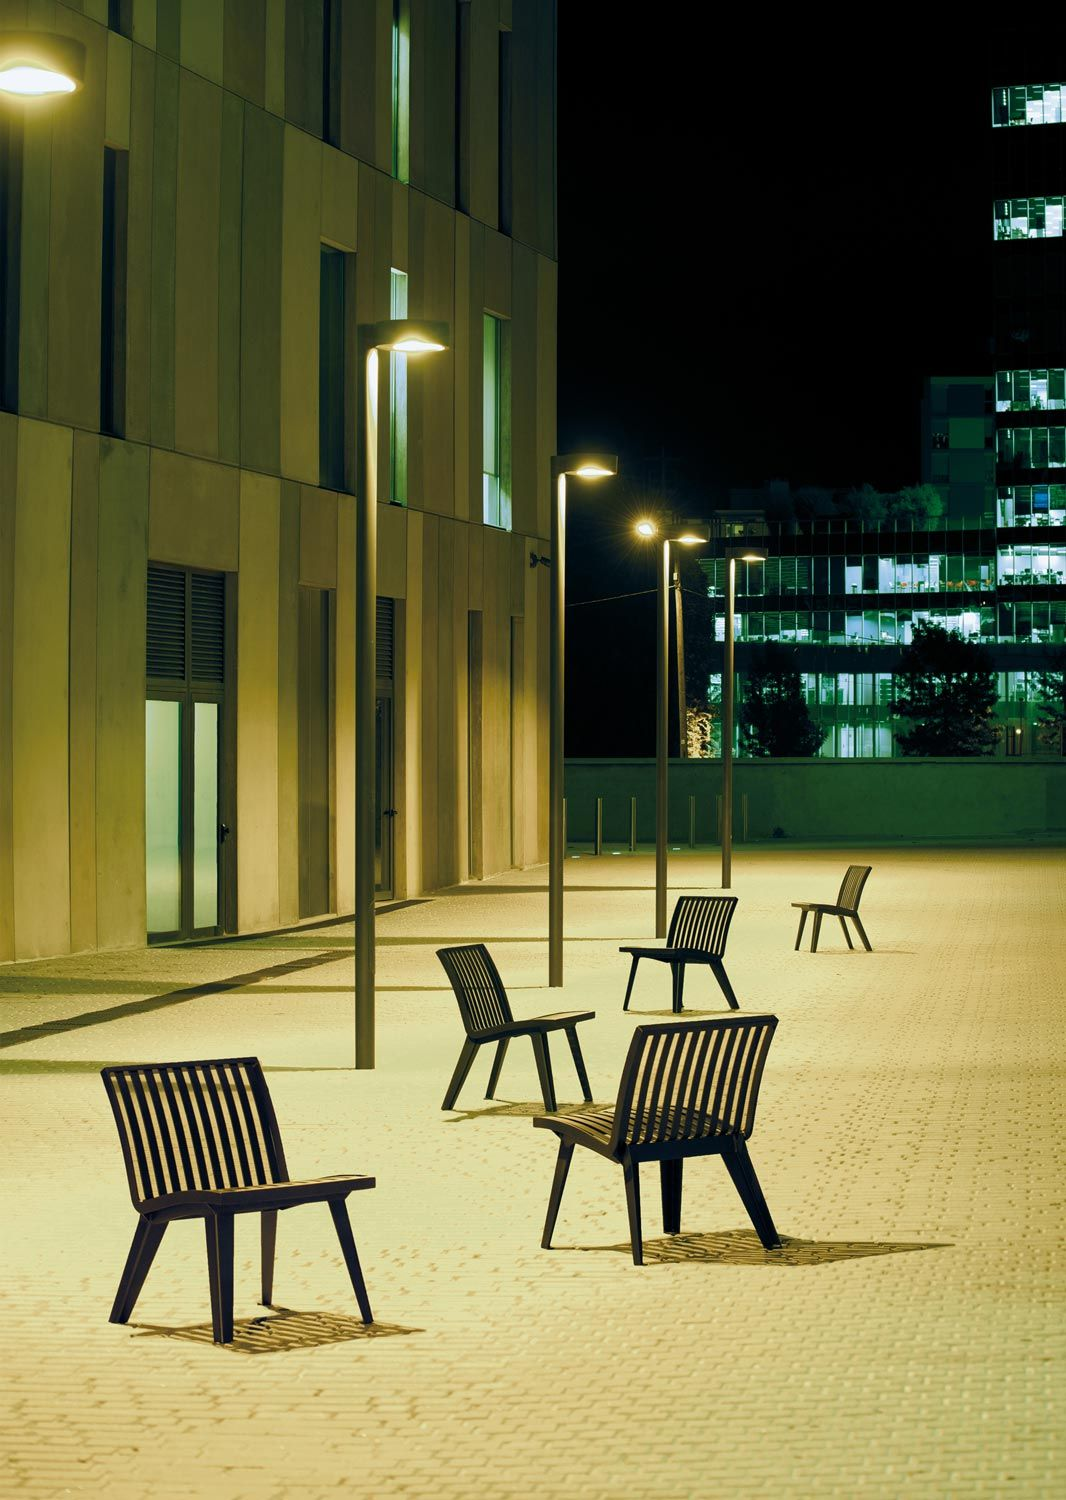 Chaise Montreal Area Mobilier Urbain Mobilier Urbain Mobilier Architecture